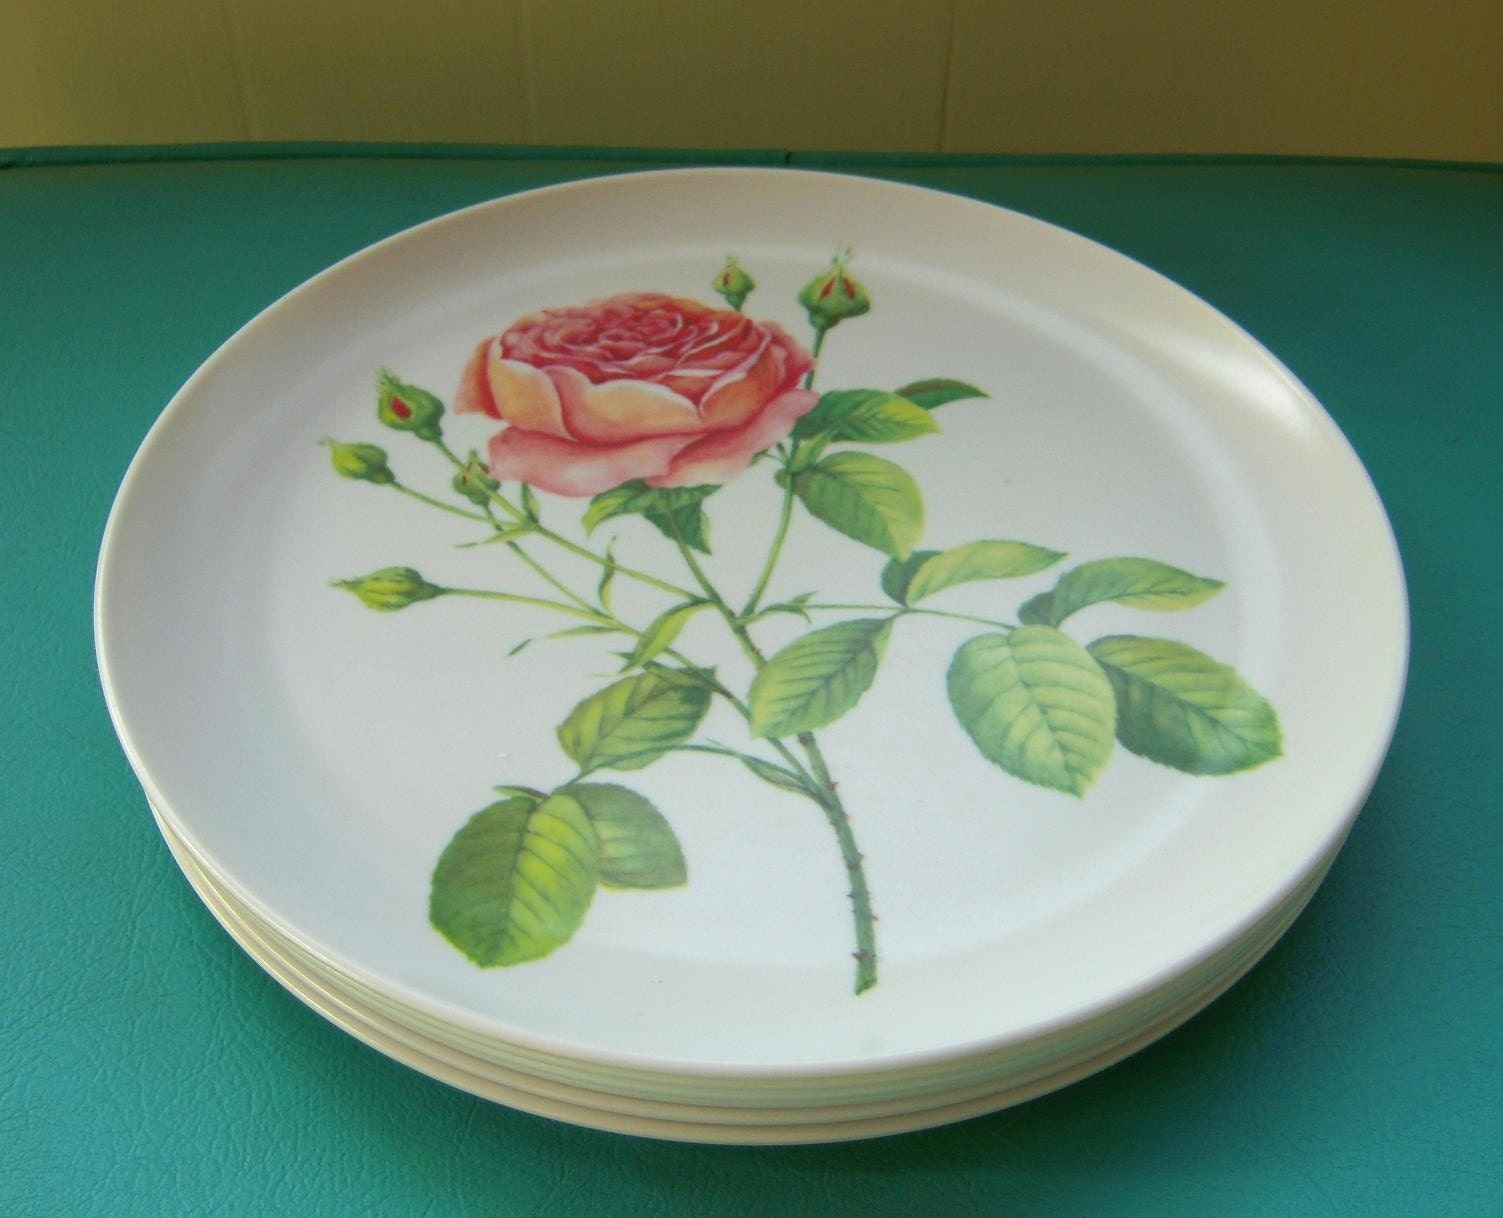 Heres a fantastic set of vintage melmac! The pink rose design is a stunner and would right fit into your vintage or shabby chic decor!